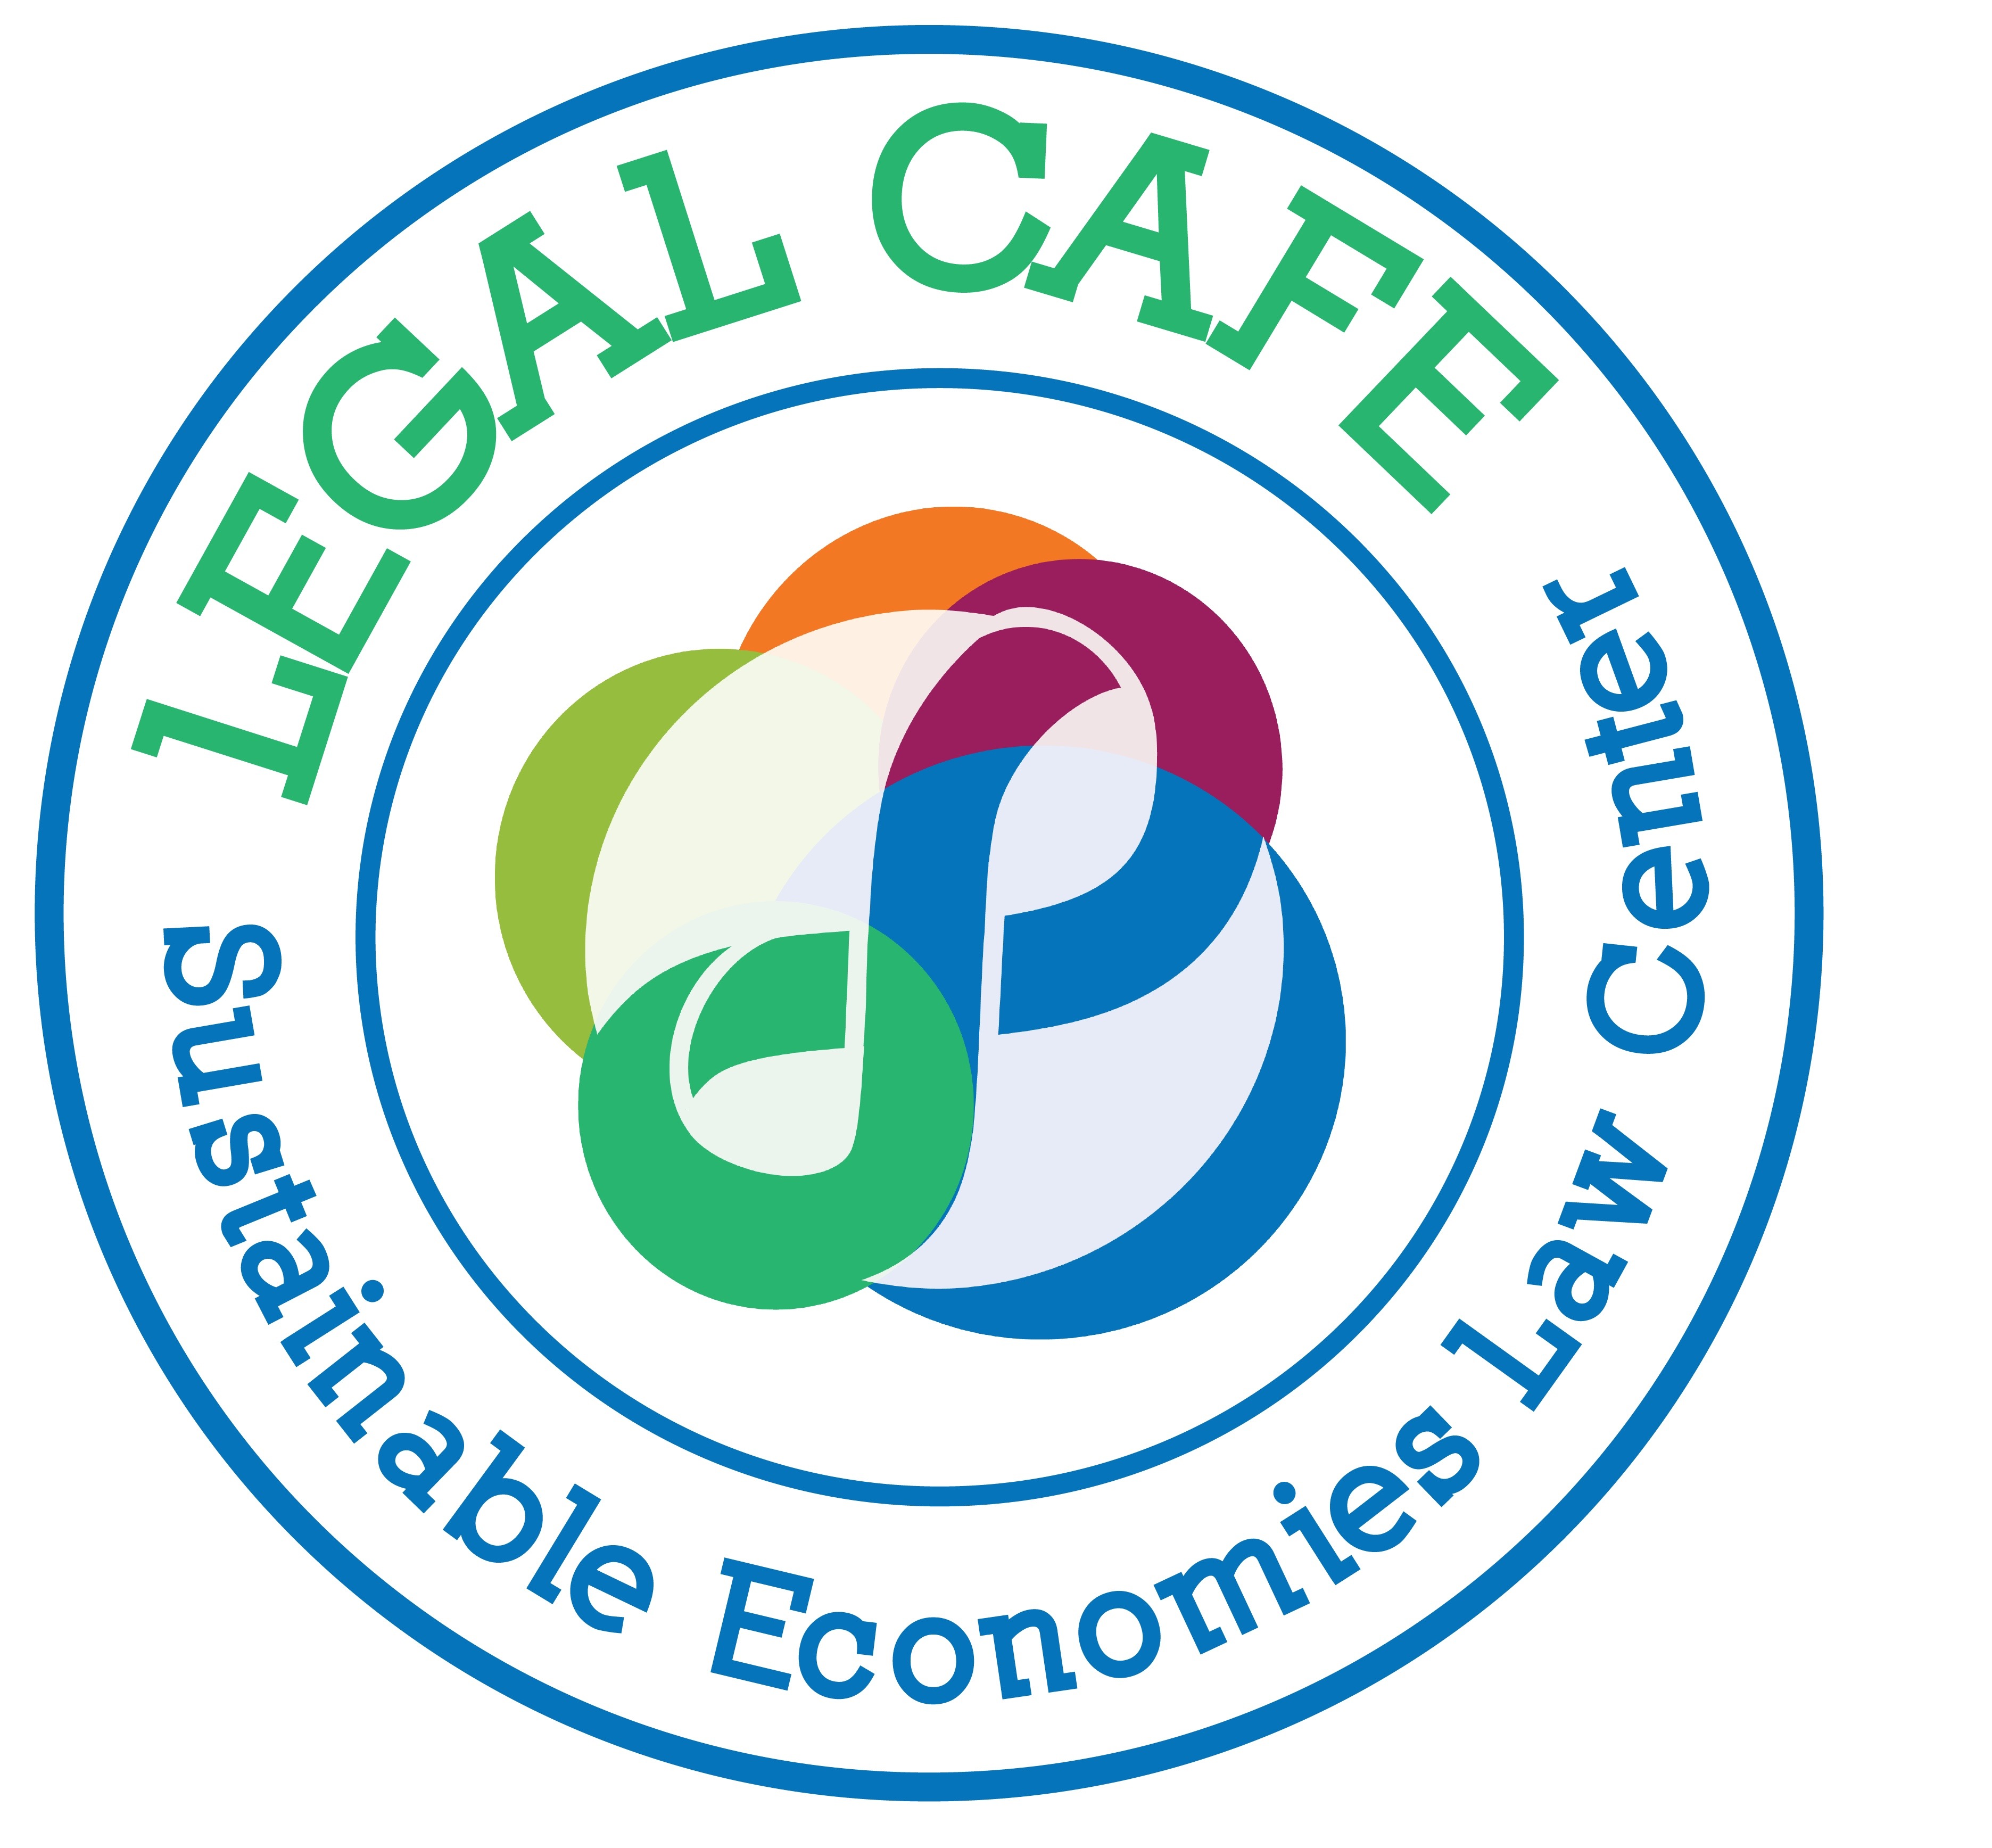 legal_cafe_logo.jpg